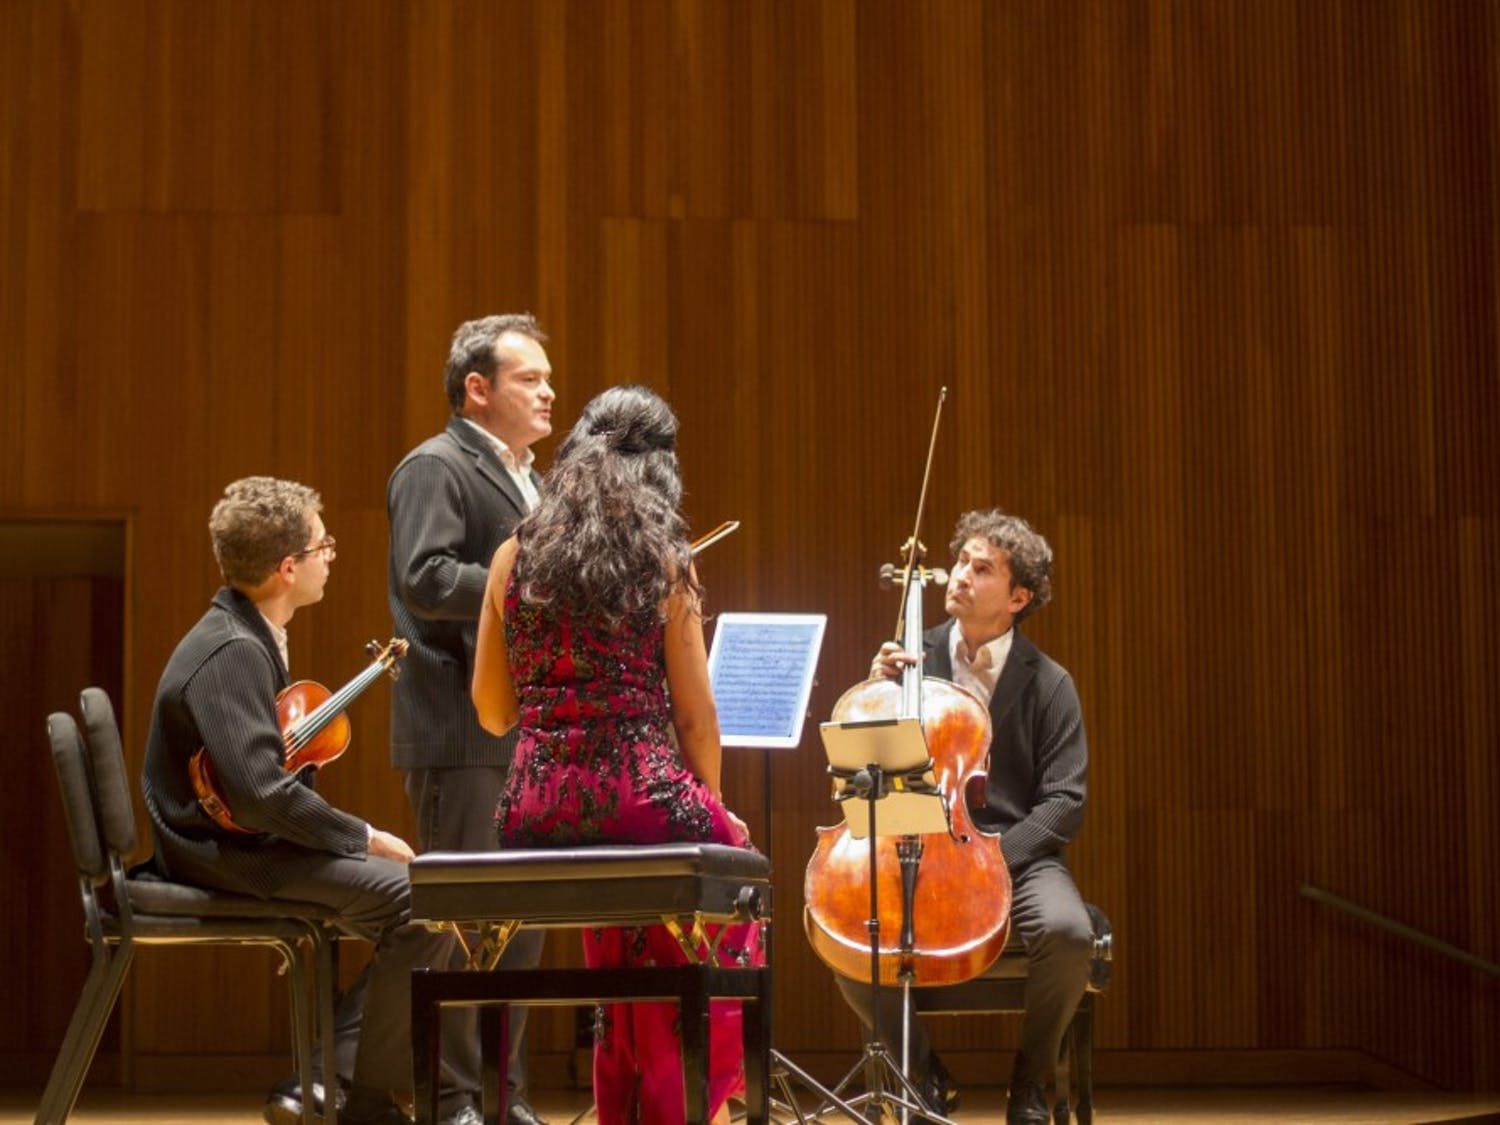 Slee Hall came alive with music during its Visiting Artist Series. The series welcomed the world-renowned Belcea Quartet for a night of music.